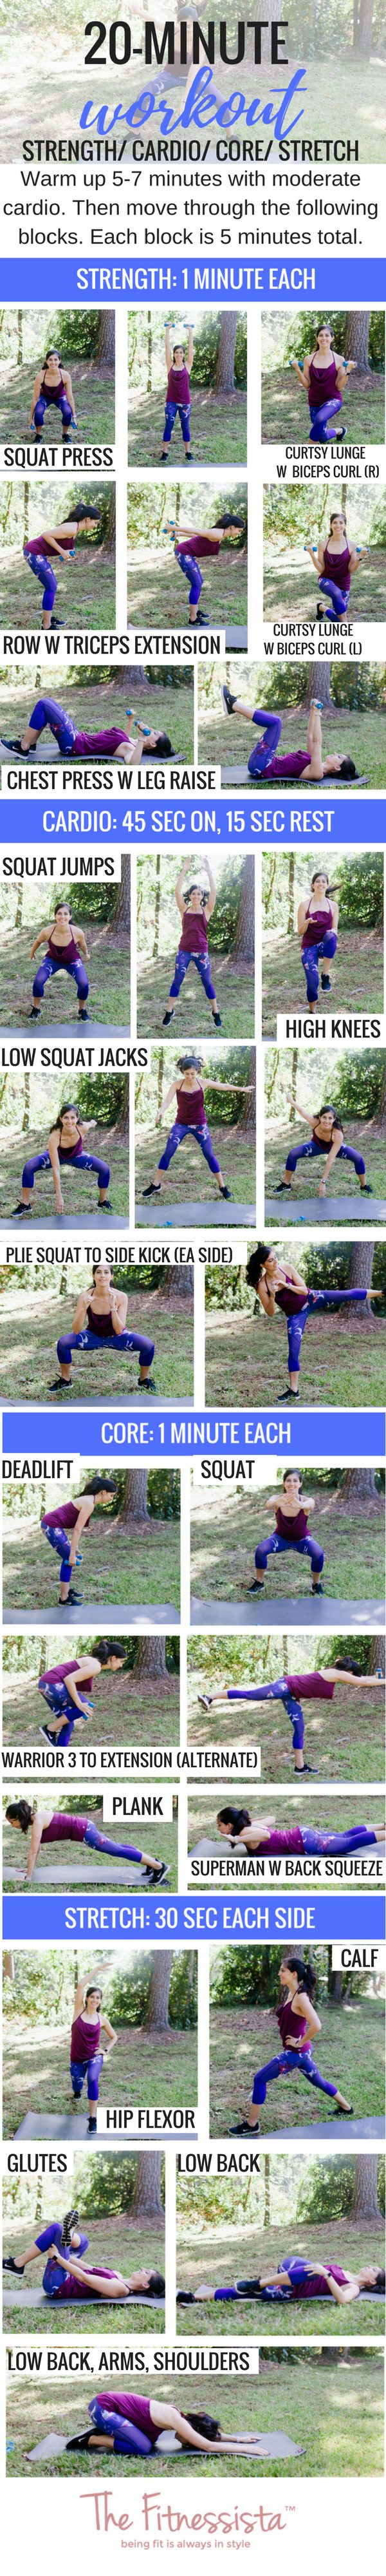 20 minute workout you can do anywhere! Get cardio, strength, core and stretching in 20 minutes with a pair of dumbbells. fitnessista.com #20minuteworkout #quickworkout